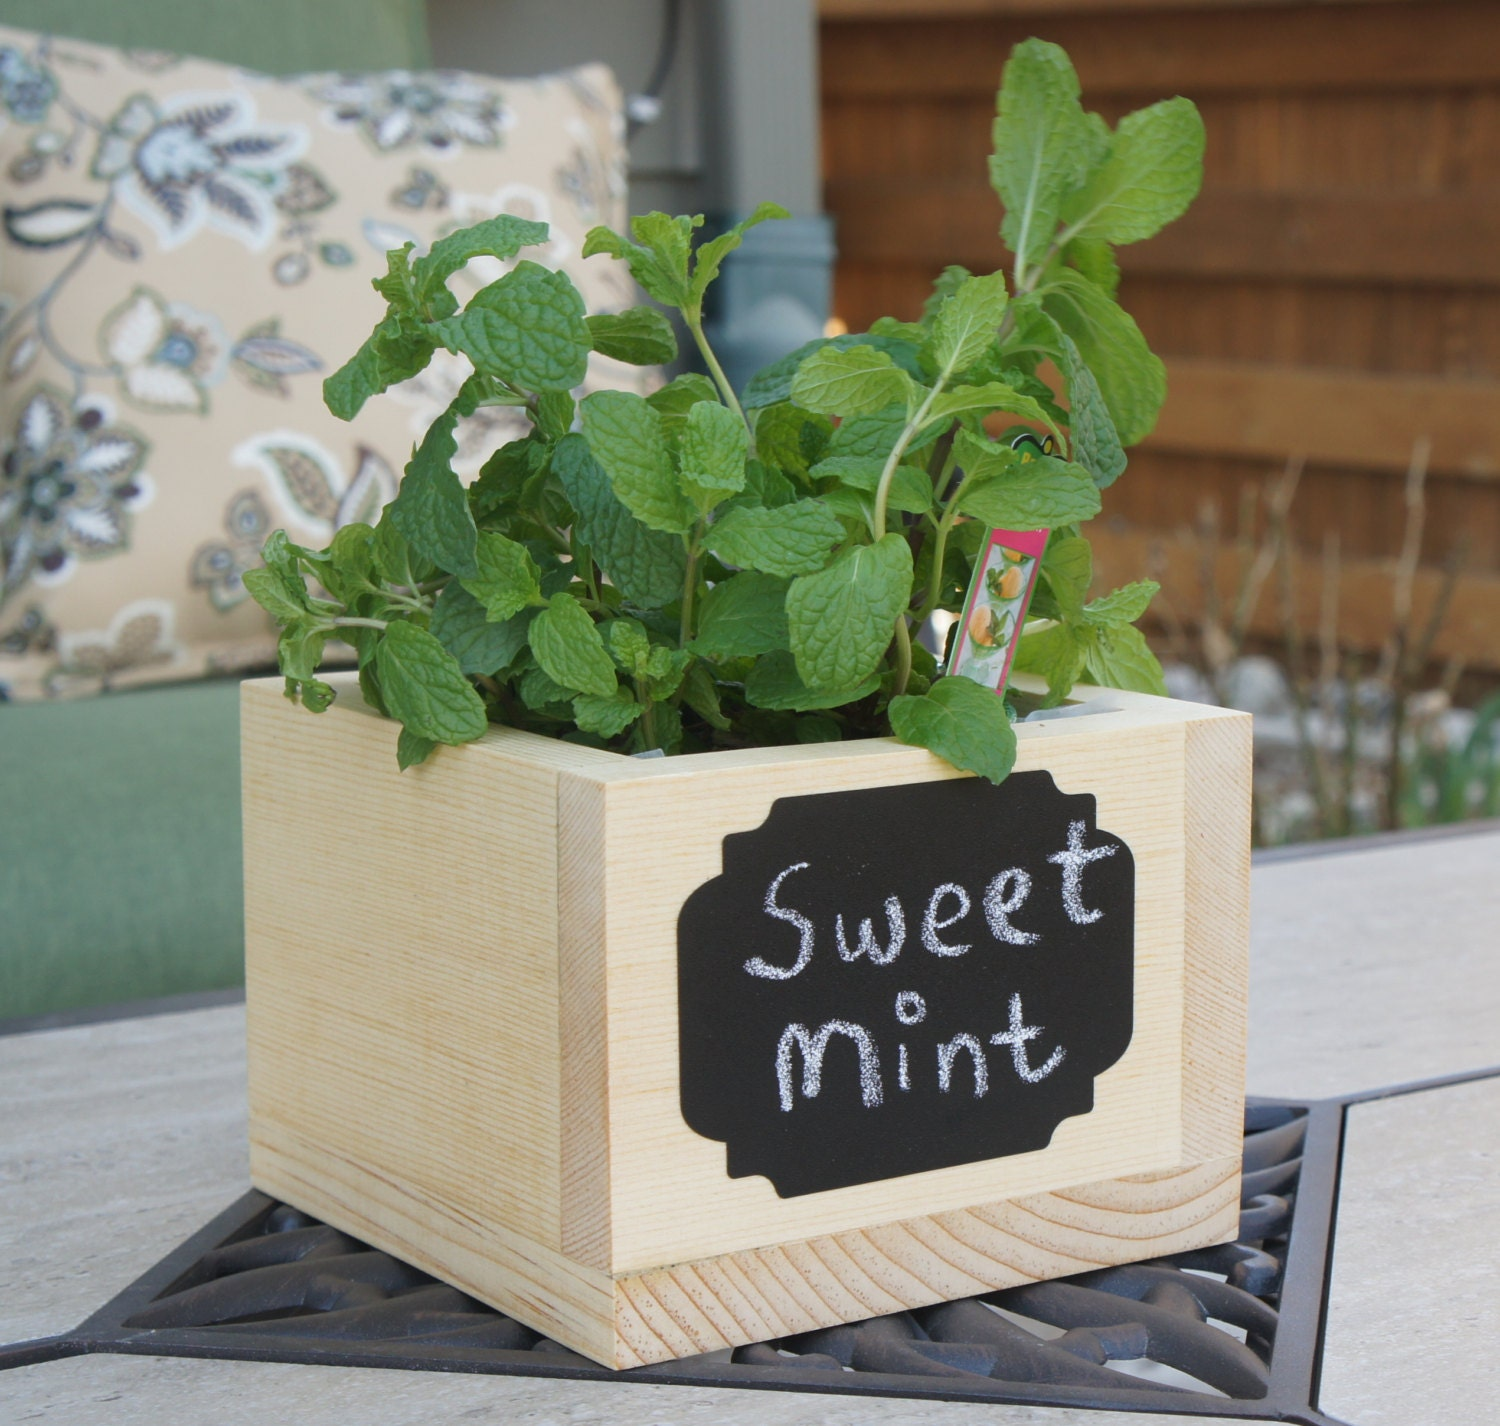 Kitchen Garden Planter: Handcrafted Planter Box With Reusable Chalkboard For Kitchen